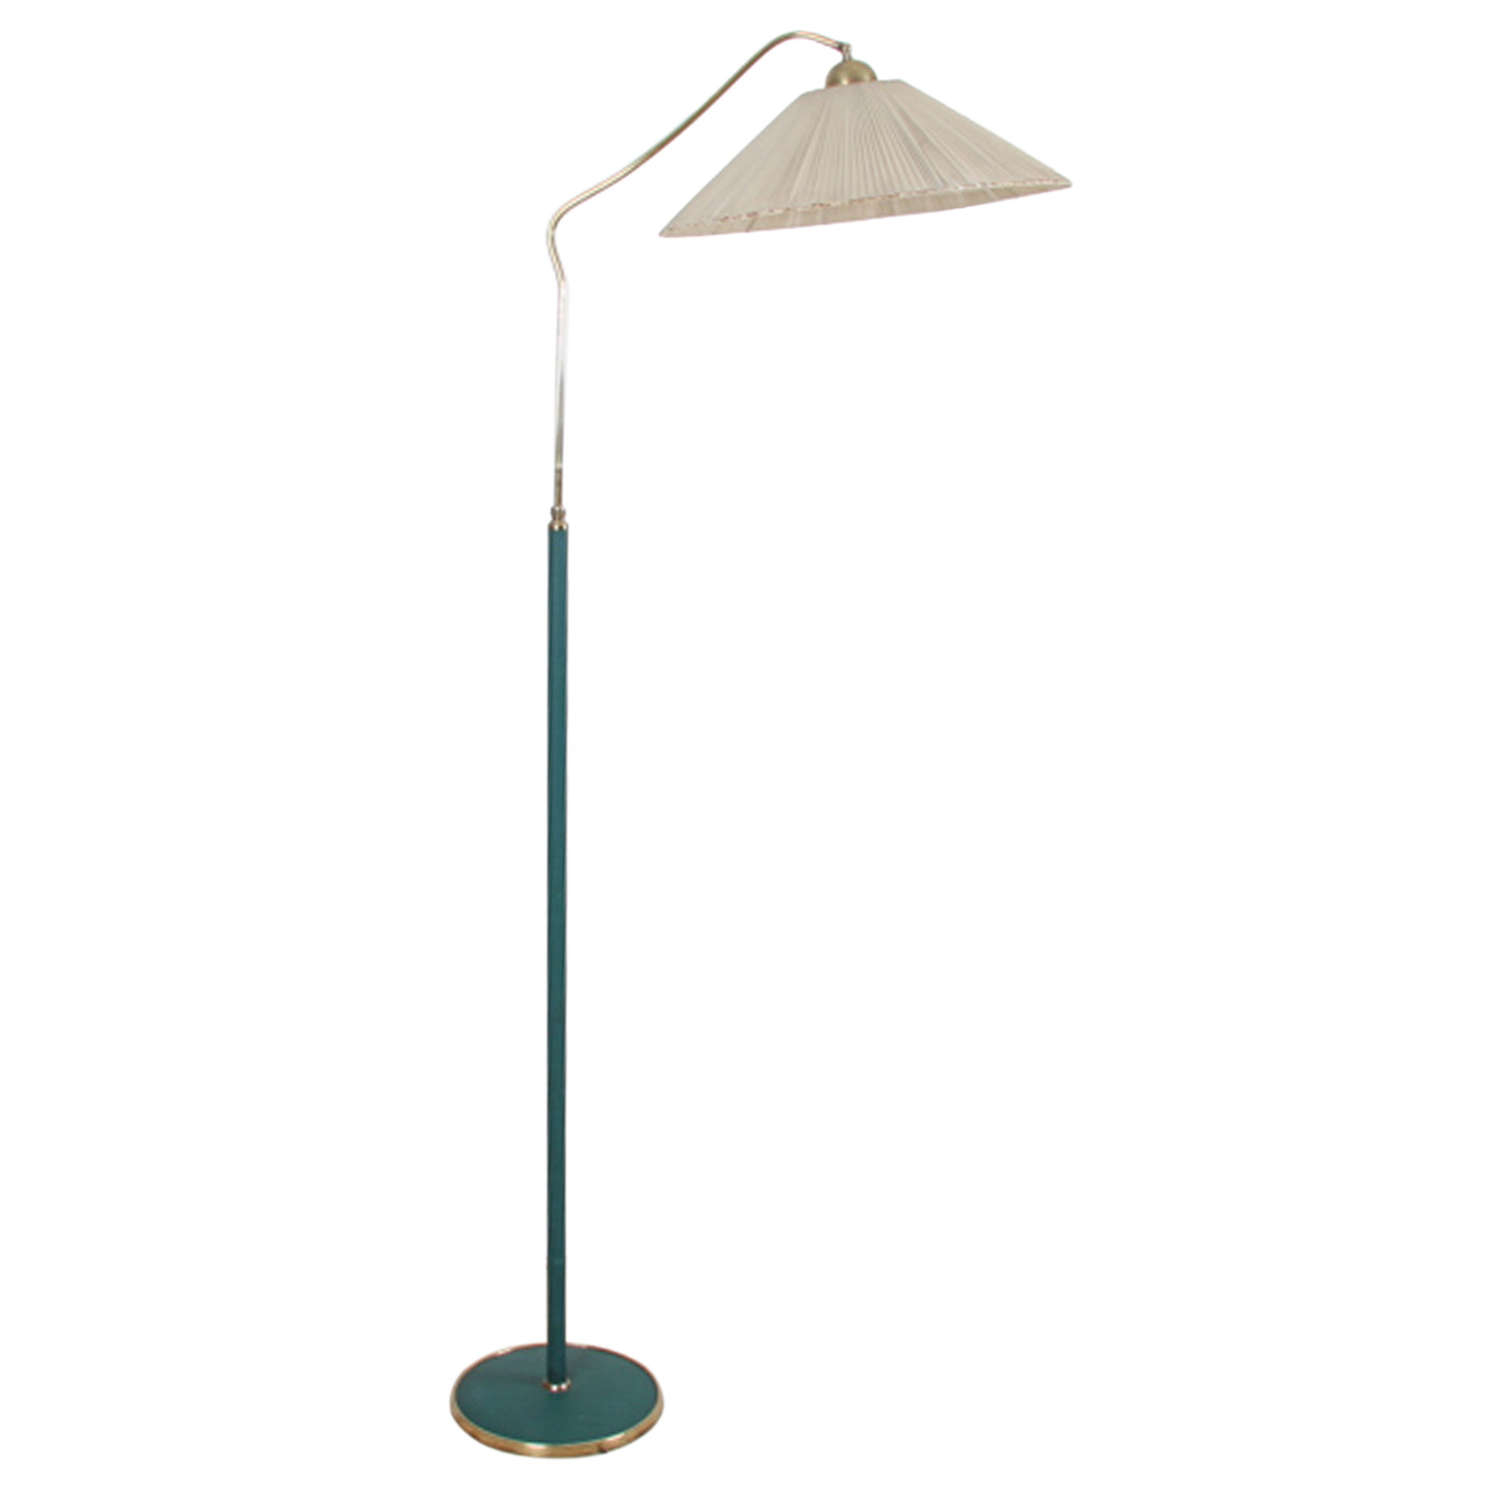 Italian 1950s Green Leather and Brass Floor Lamp